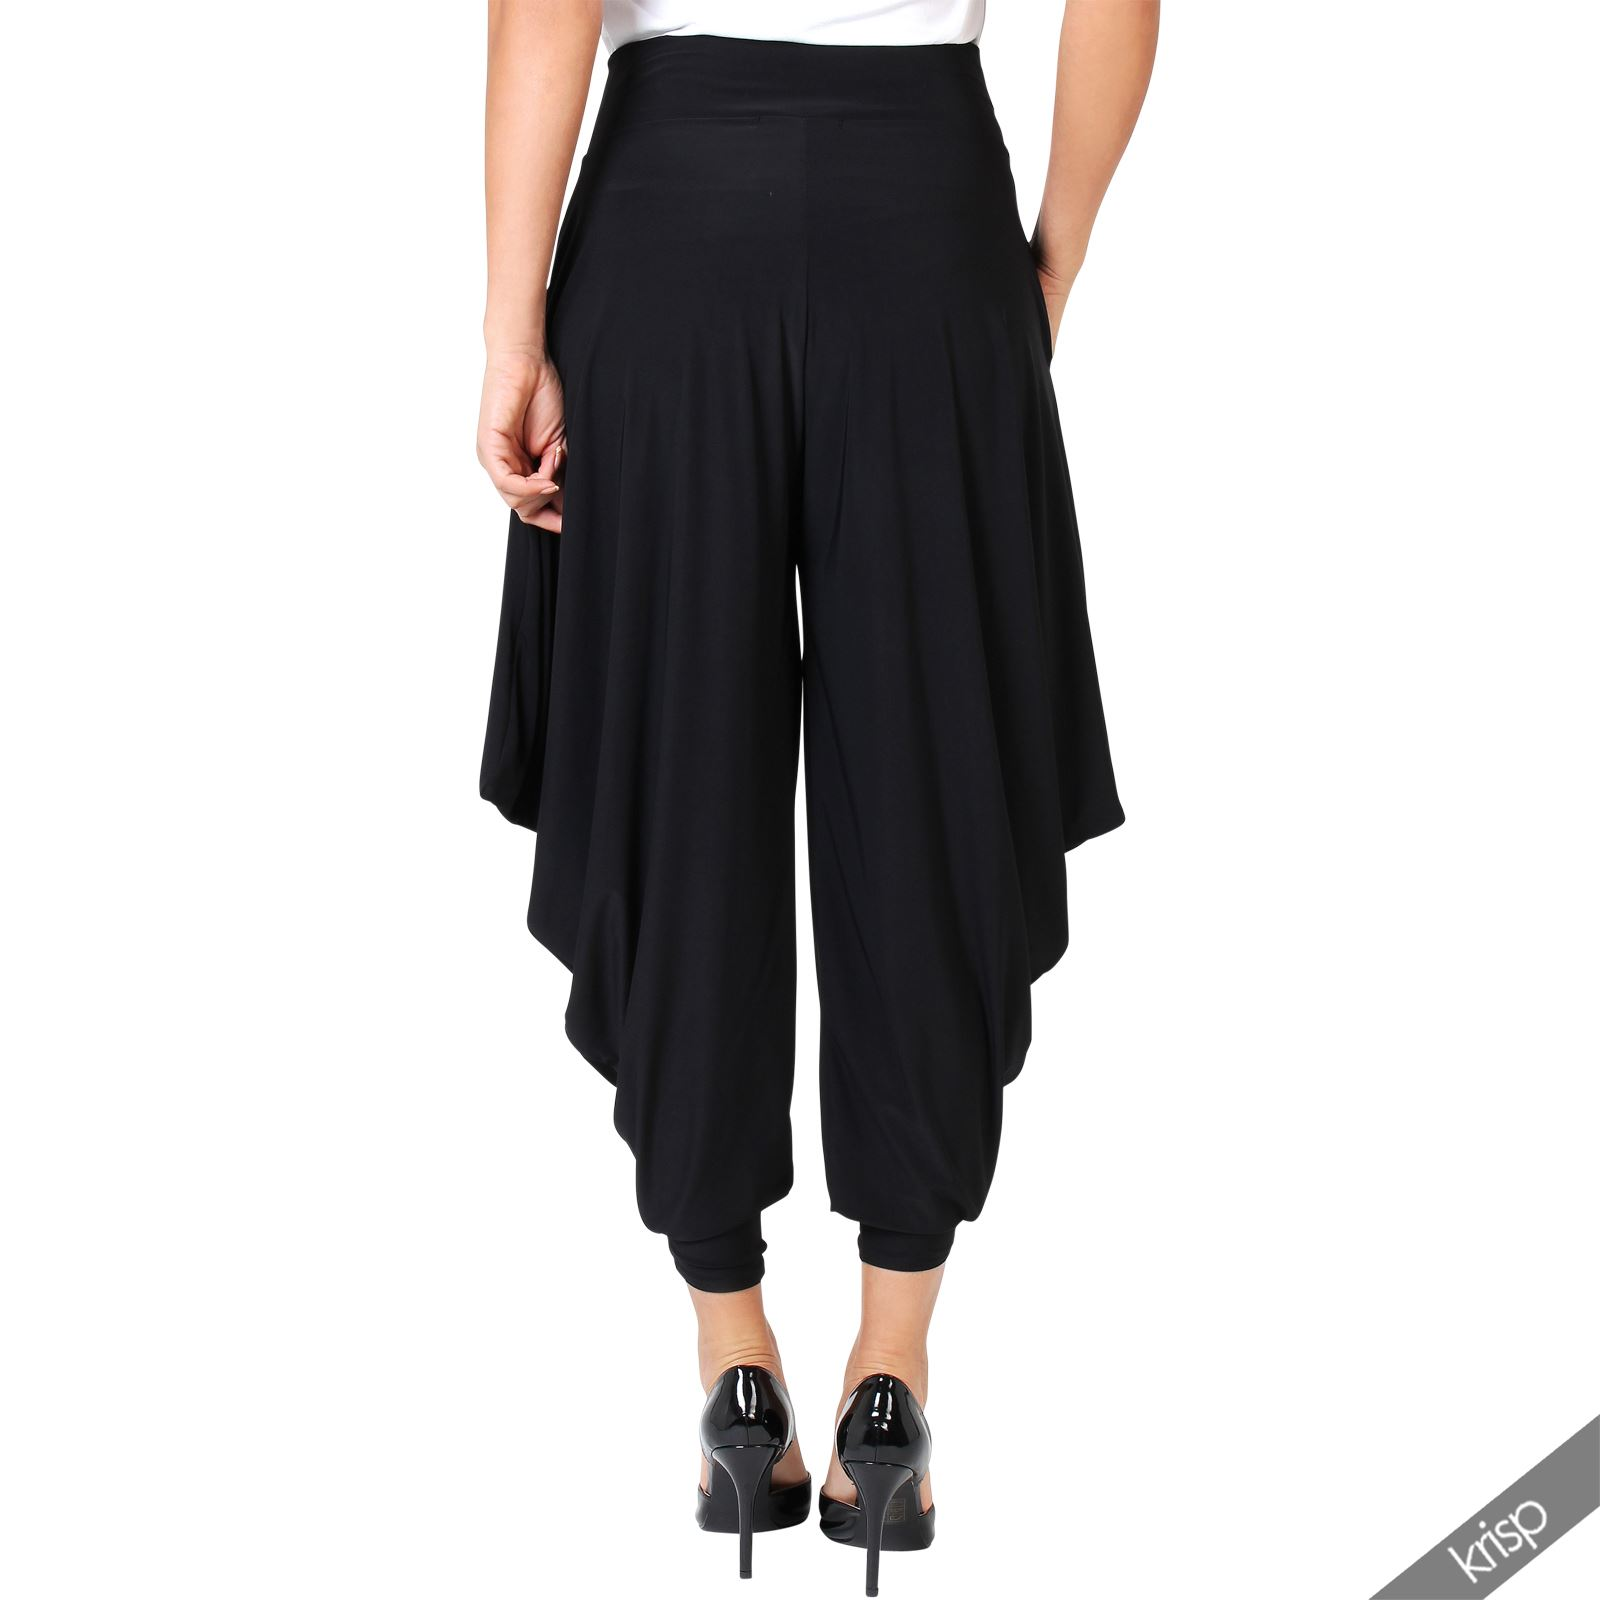 Trousers. Buy women online at George. Shop from our latest Women range. Fantastic quality, style and value.